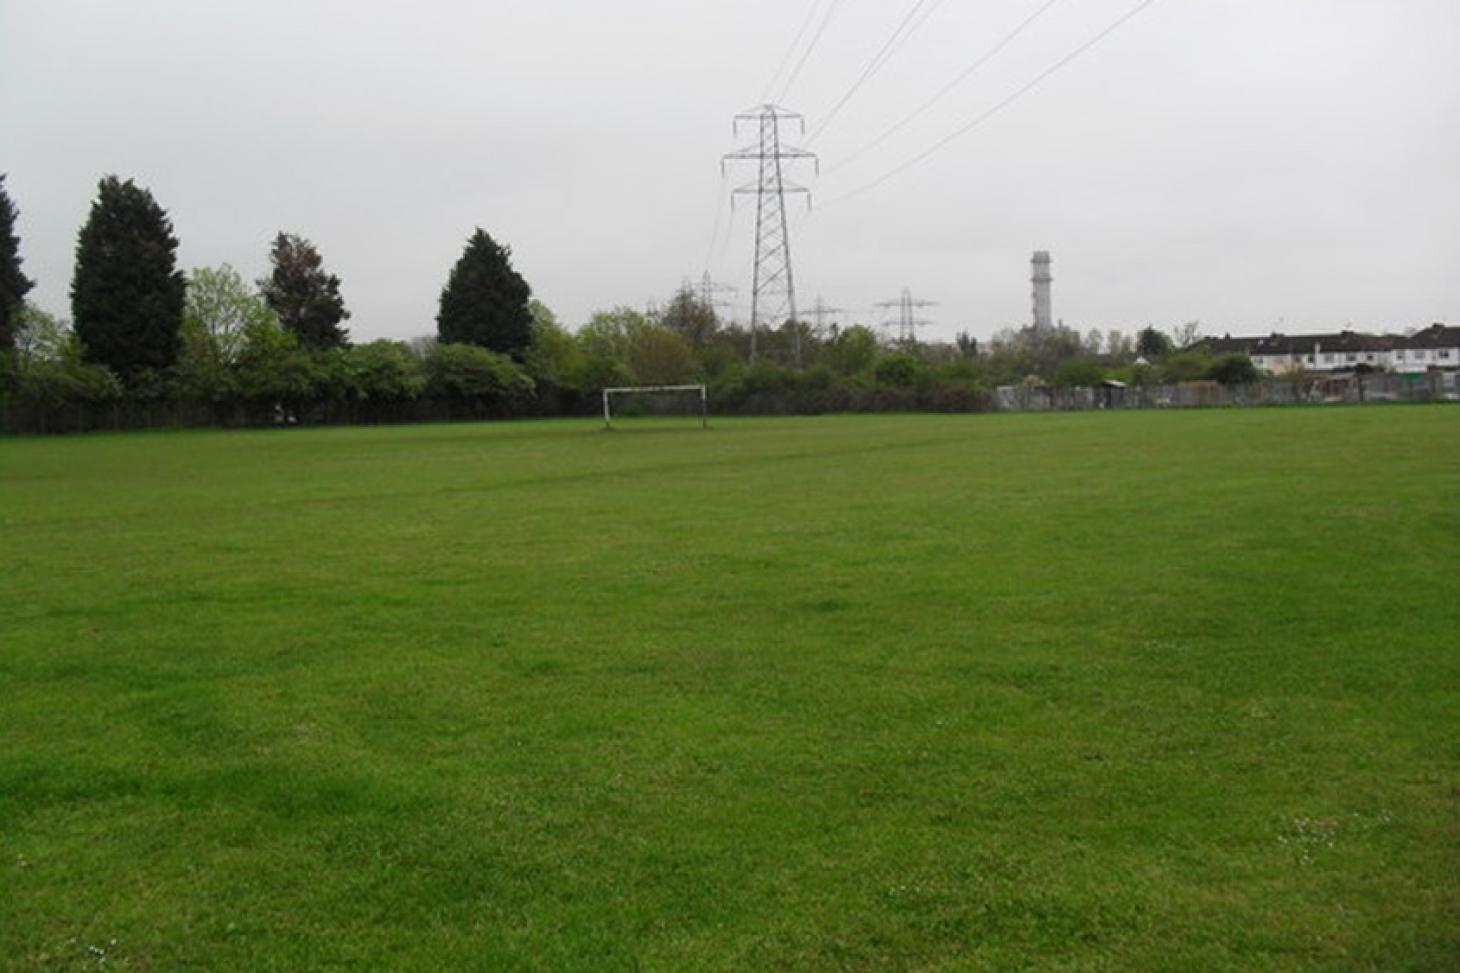 Soham Road Recreation Ground 11 a side | Grass football pitch